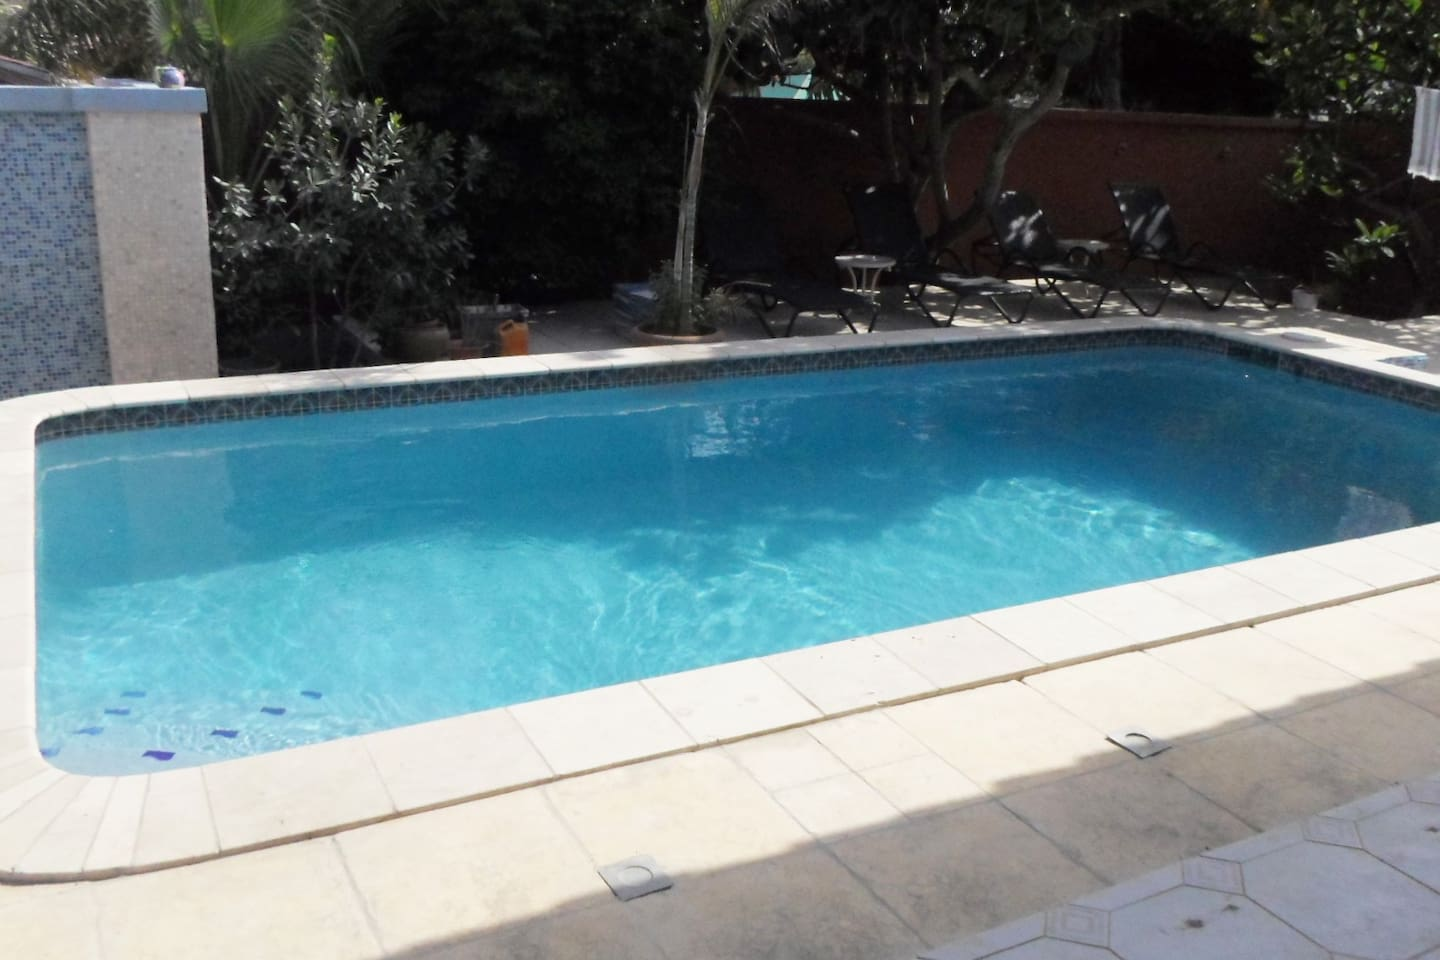 Pool in the garden with 8 loungers